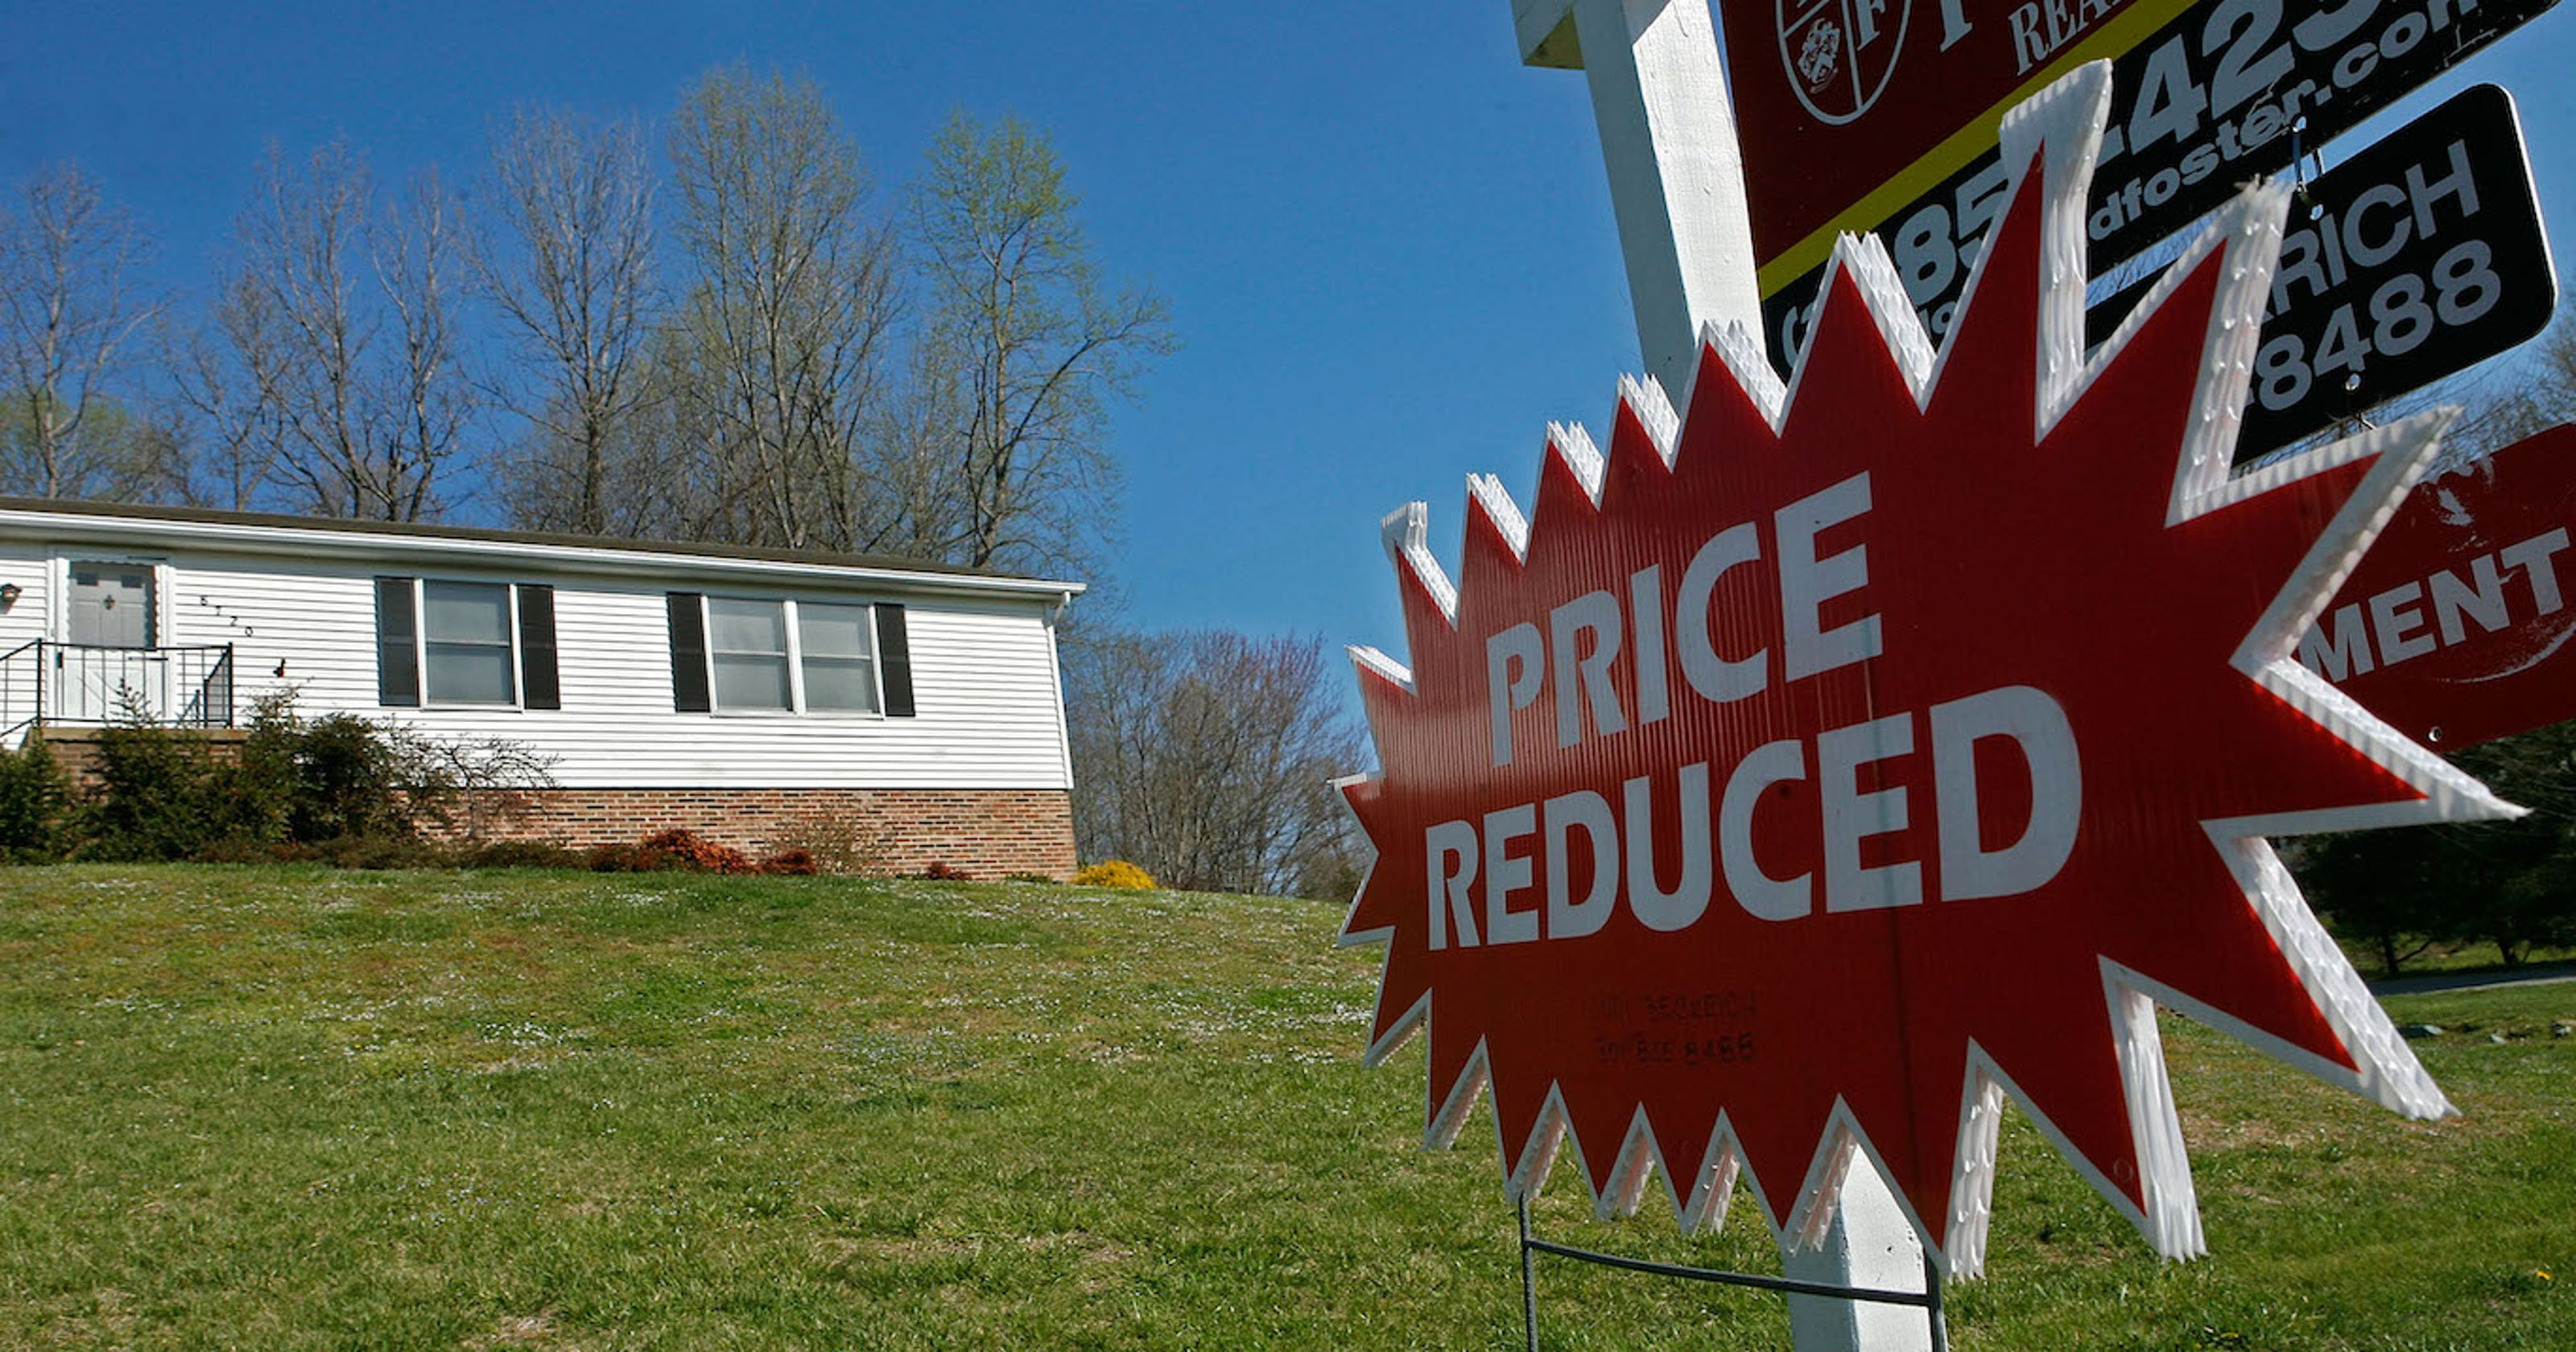 Mortgage rate drop gives home buyers a surprise and a boost